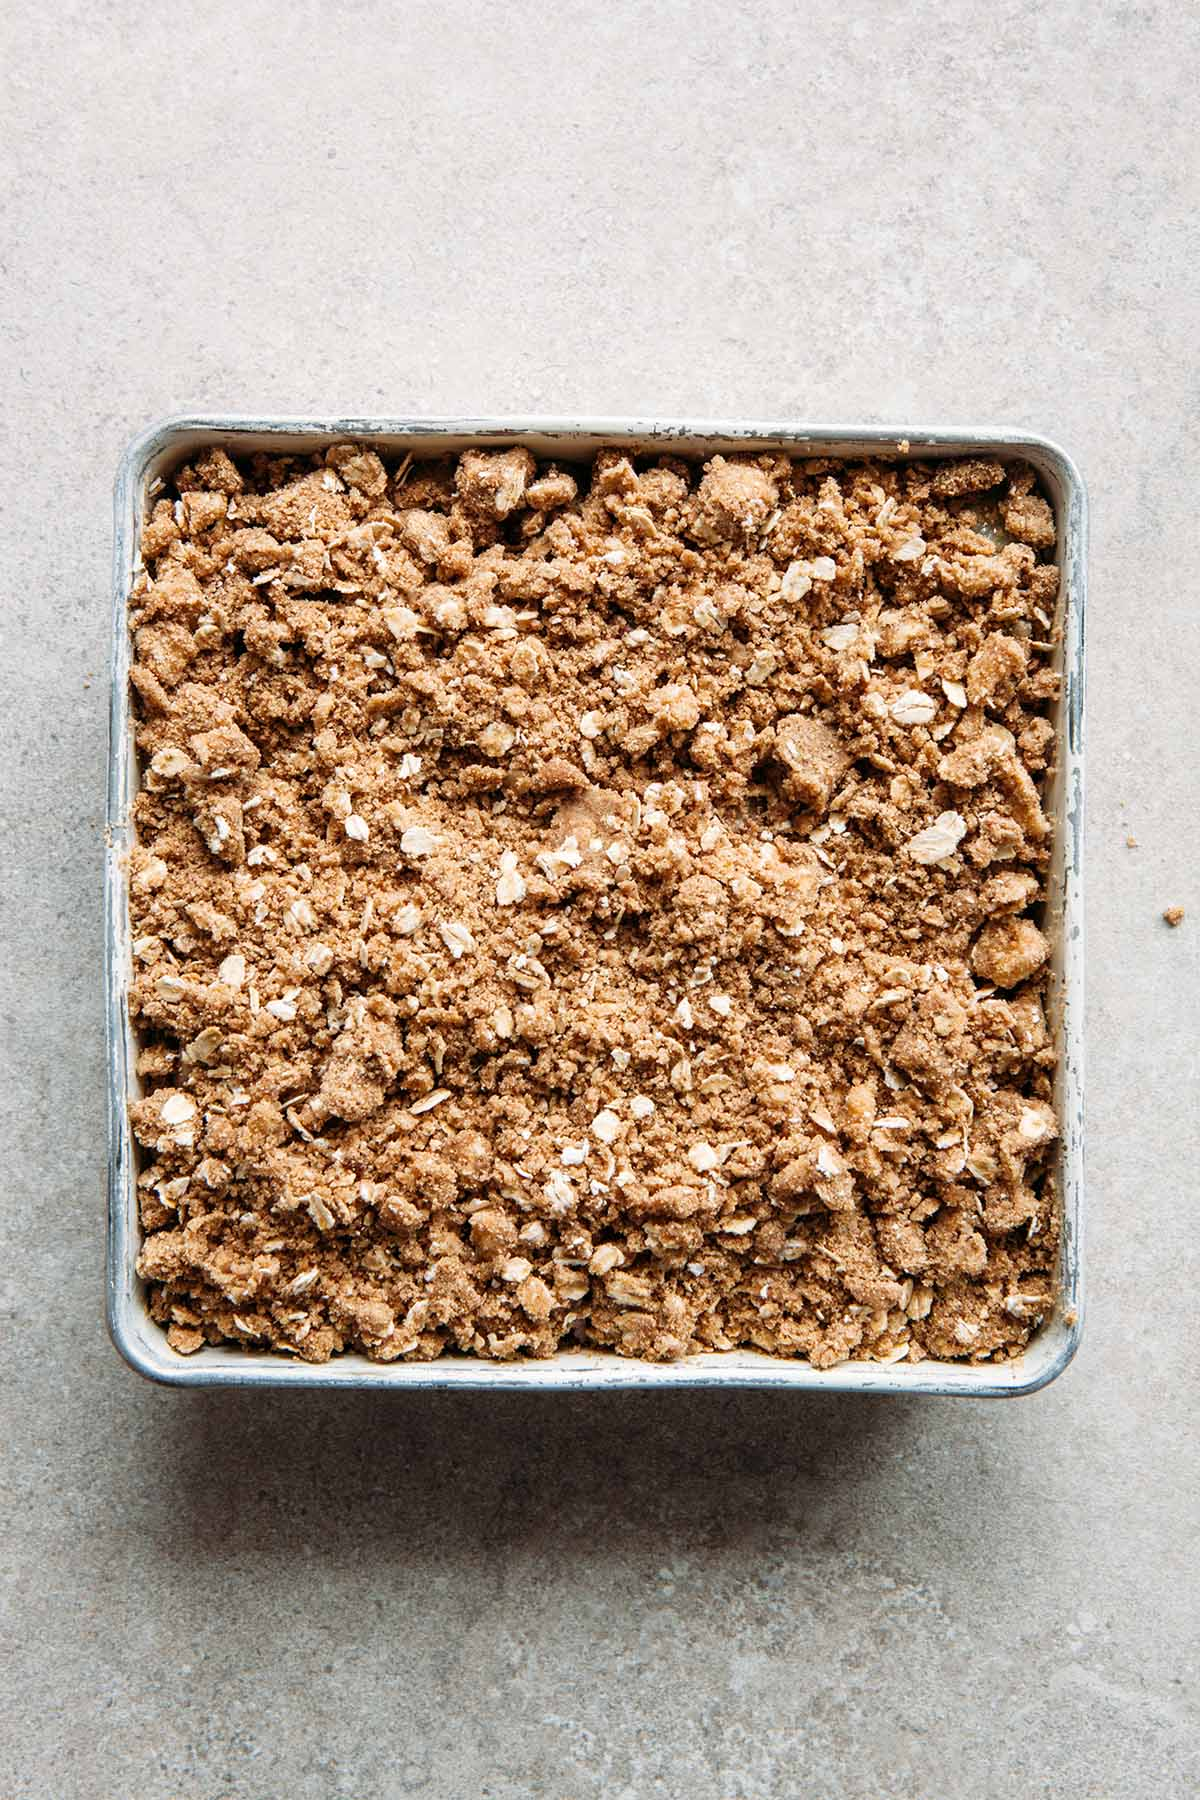 Unbaked gluten-free rhubarb crisp in a square pan.